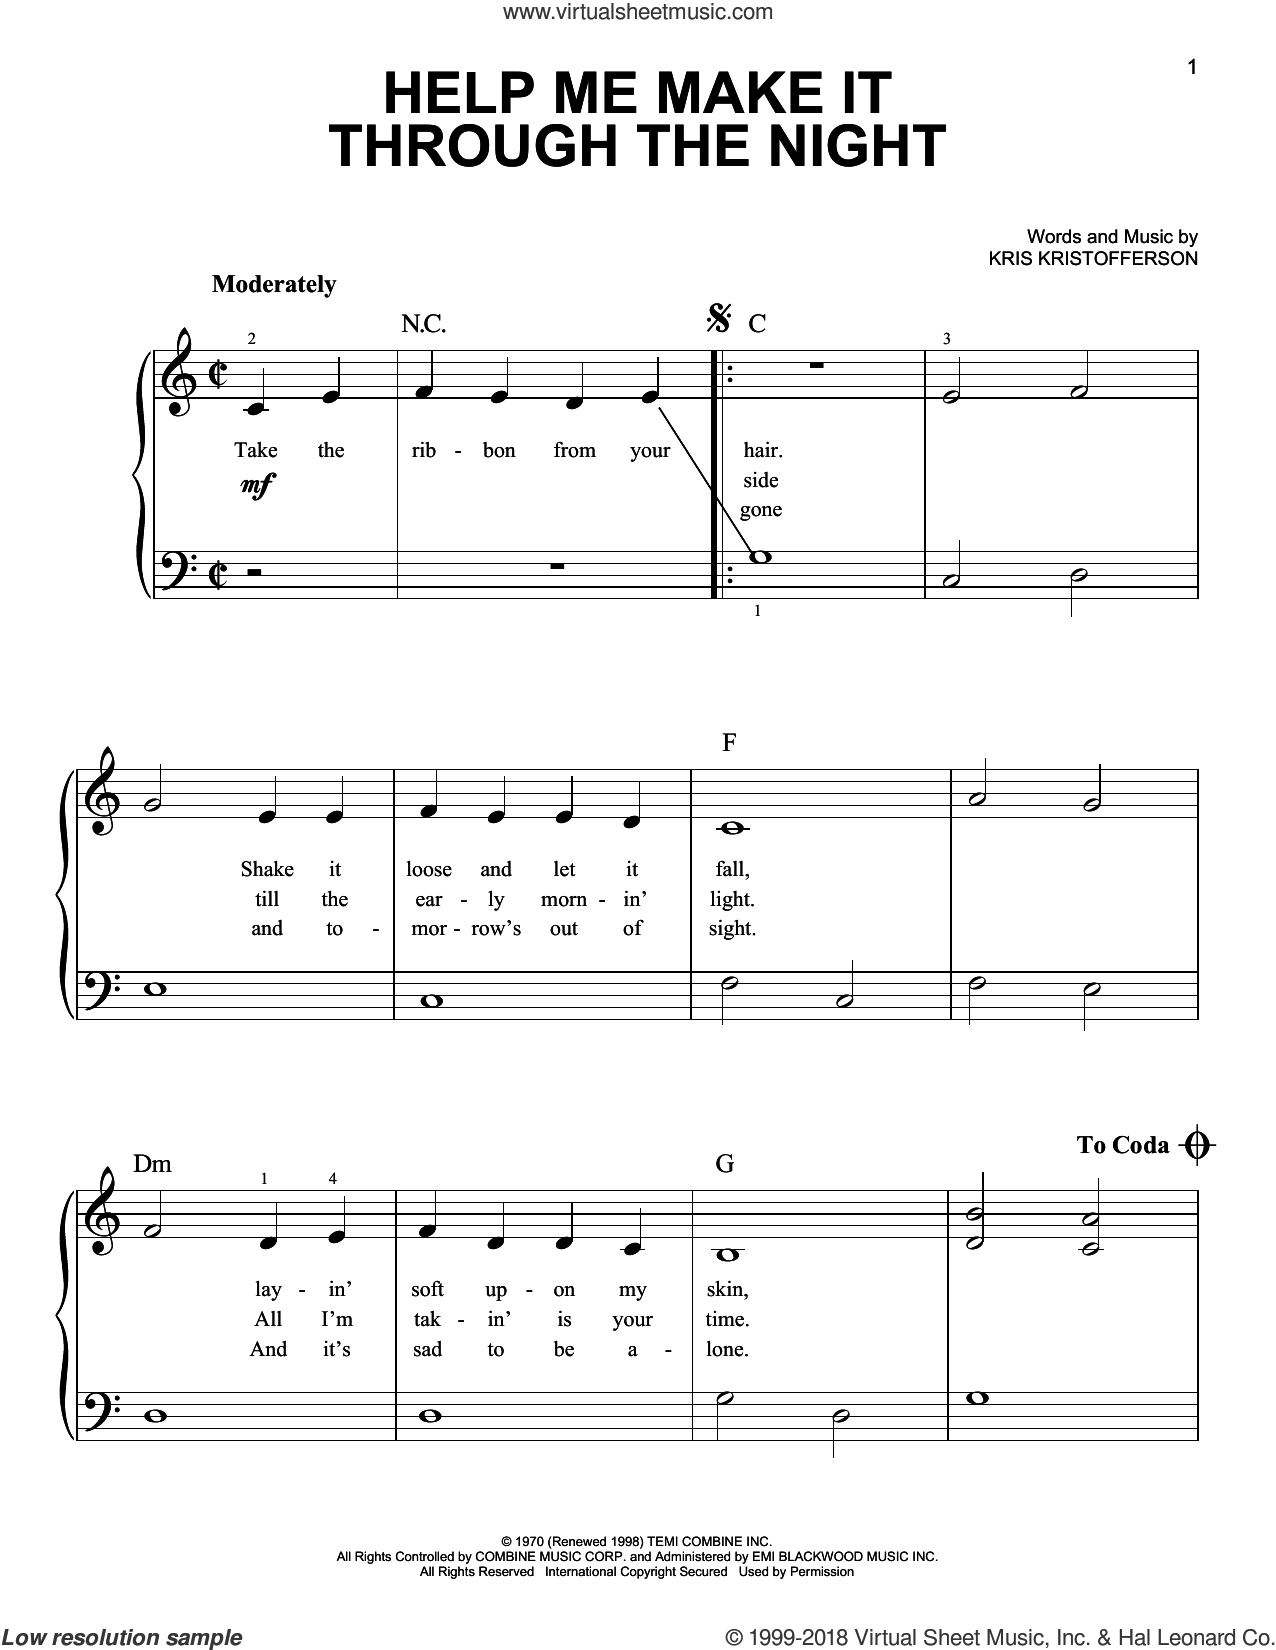 Help Me Make It Through The Night sheet music for piano solo by Kris Kristofferson, Elvis Presley, Sammi Smith and Willie Nelson, beginner skill level